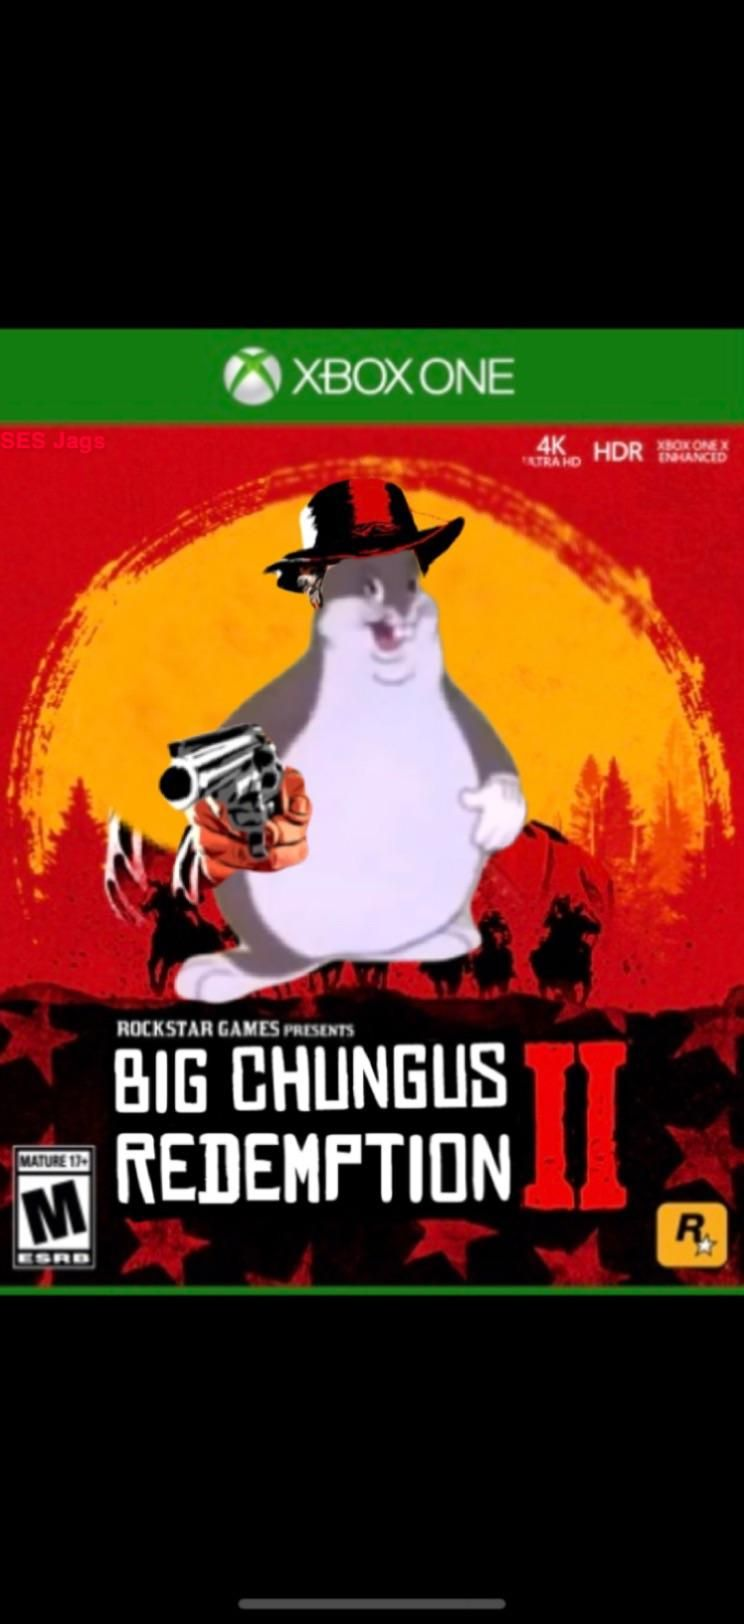 Big Chungus Redemption 2 Get More Gifs Funny Funnymemes Humor